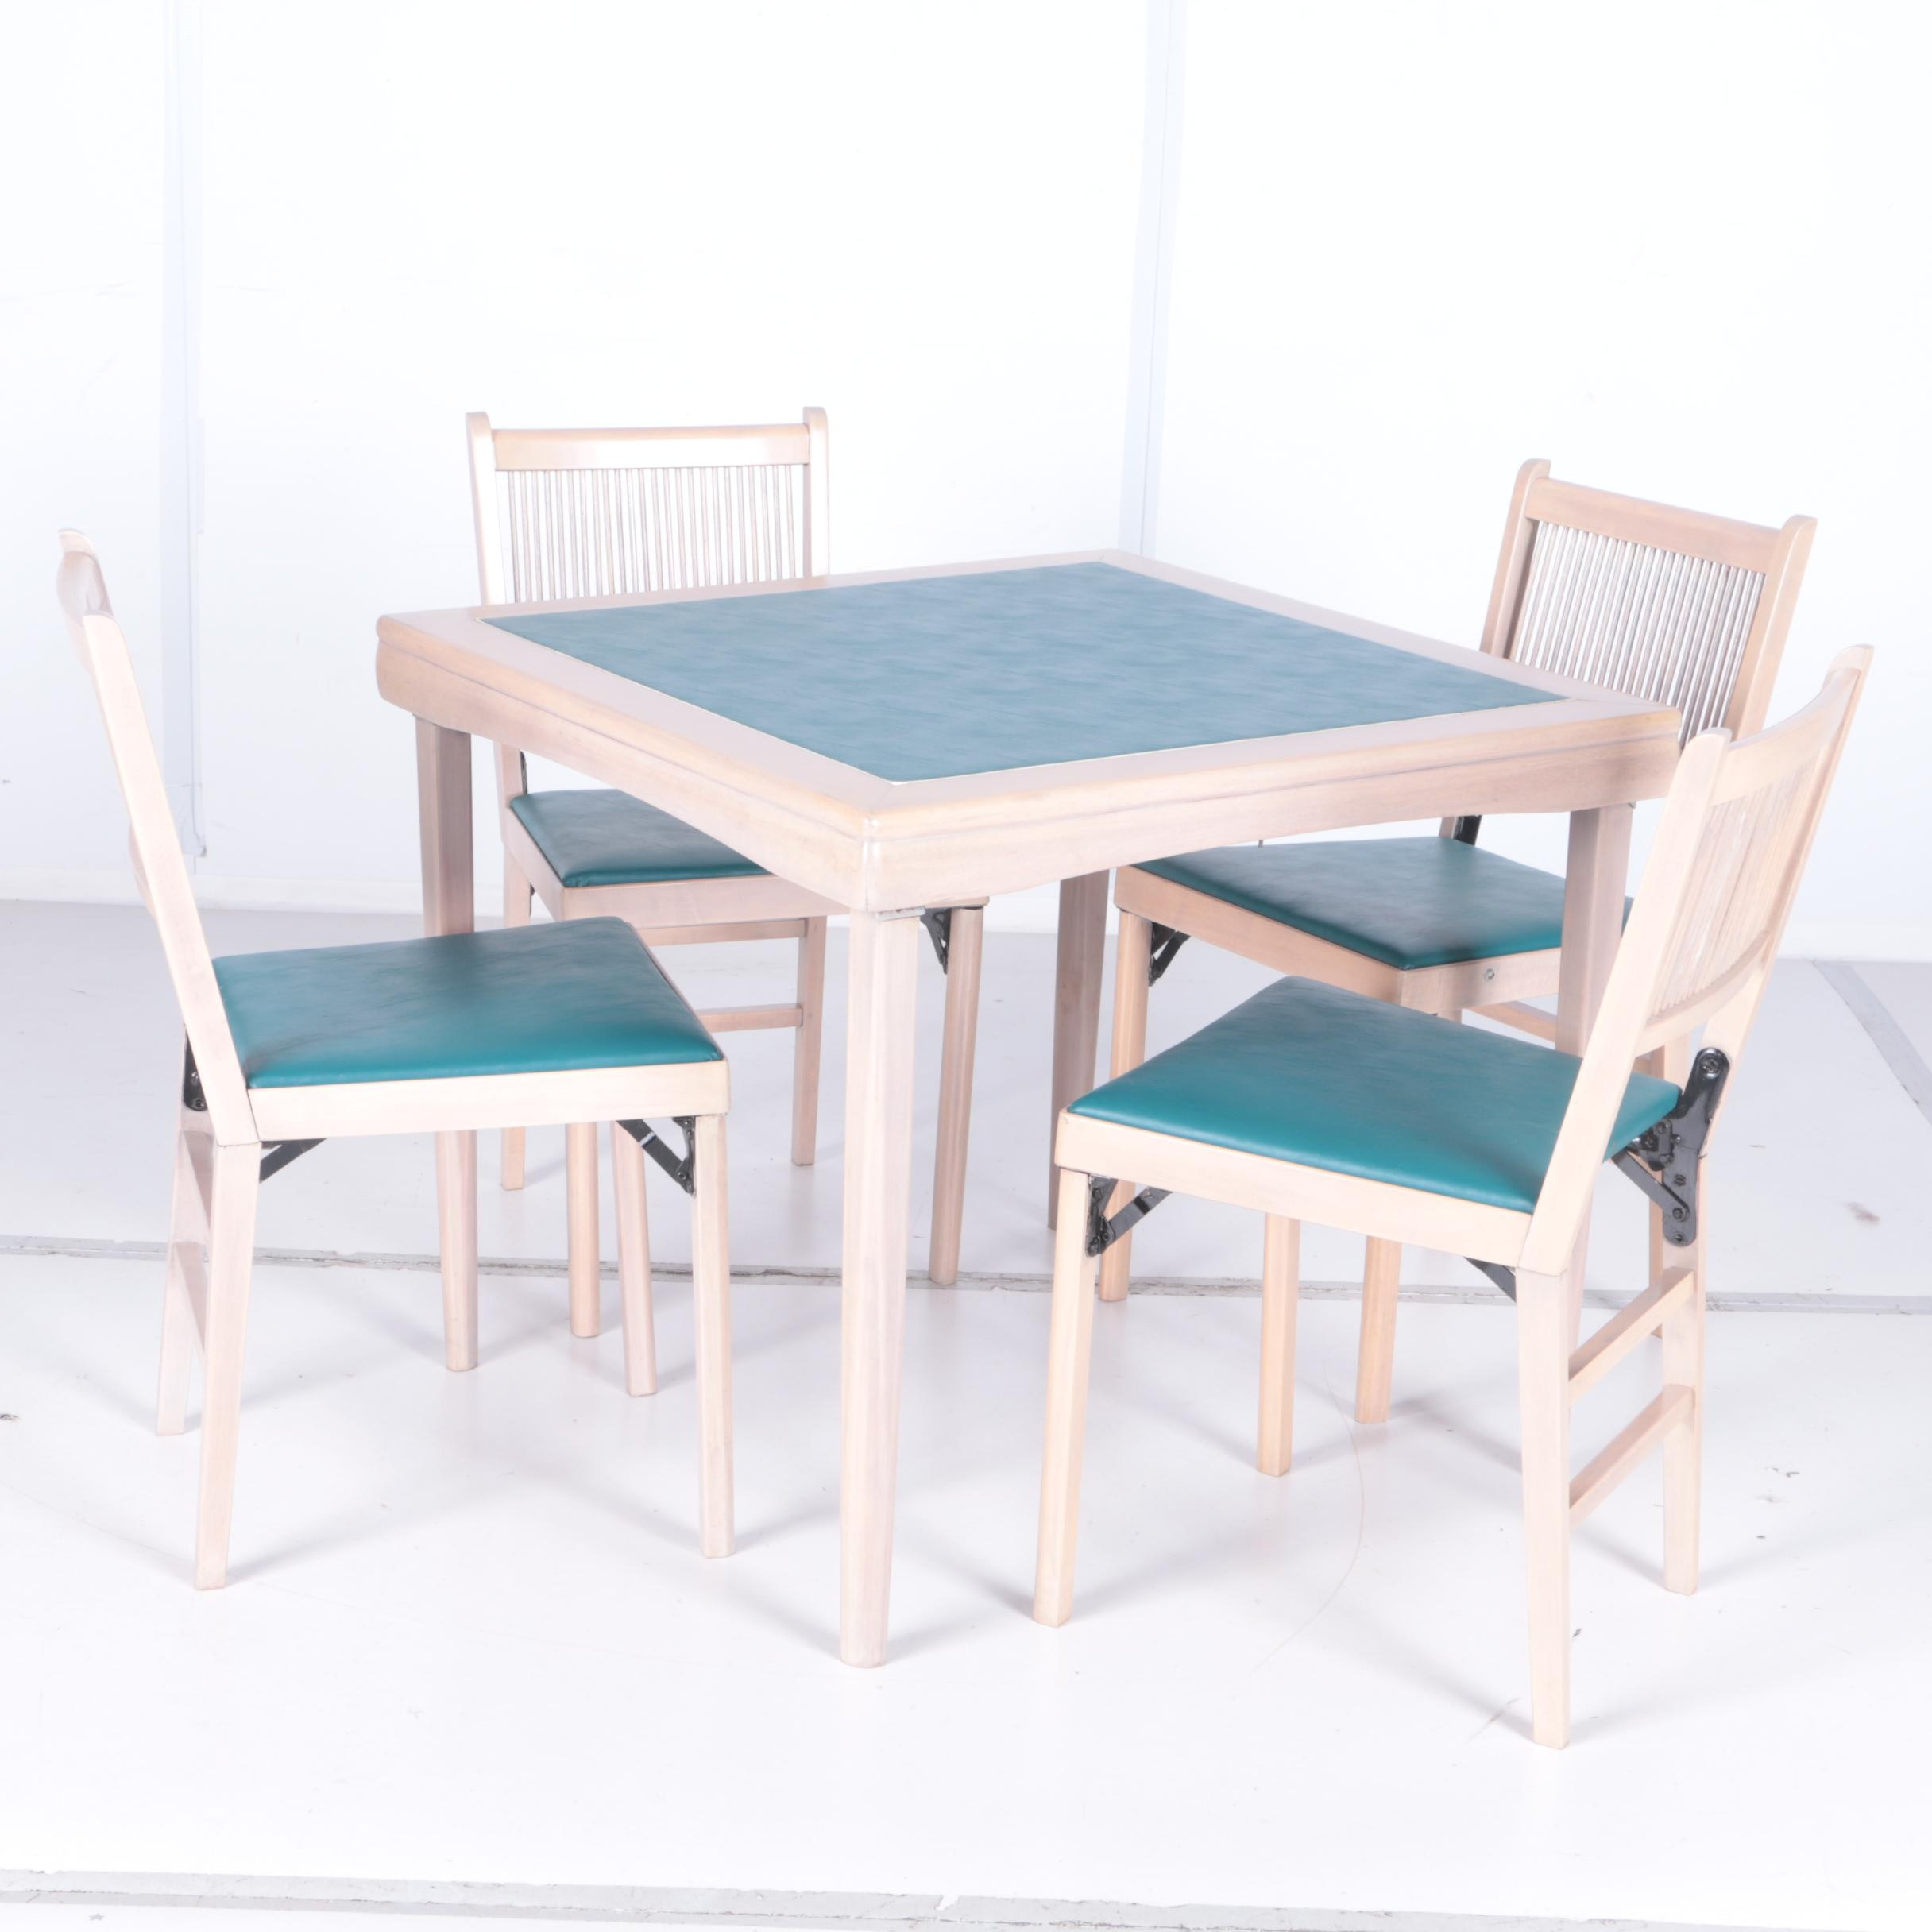 Four Folding Chairs With Table by Leg-O-Matic